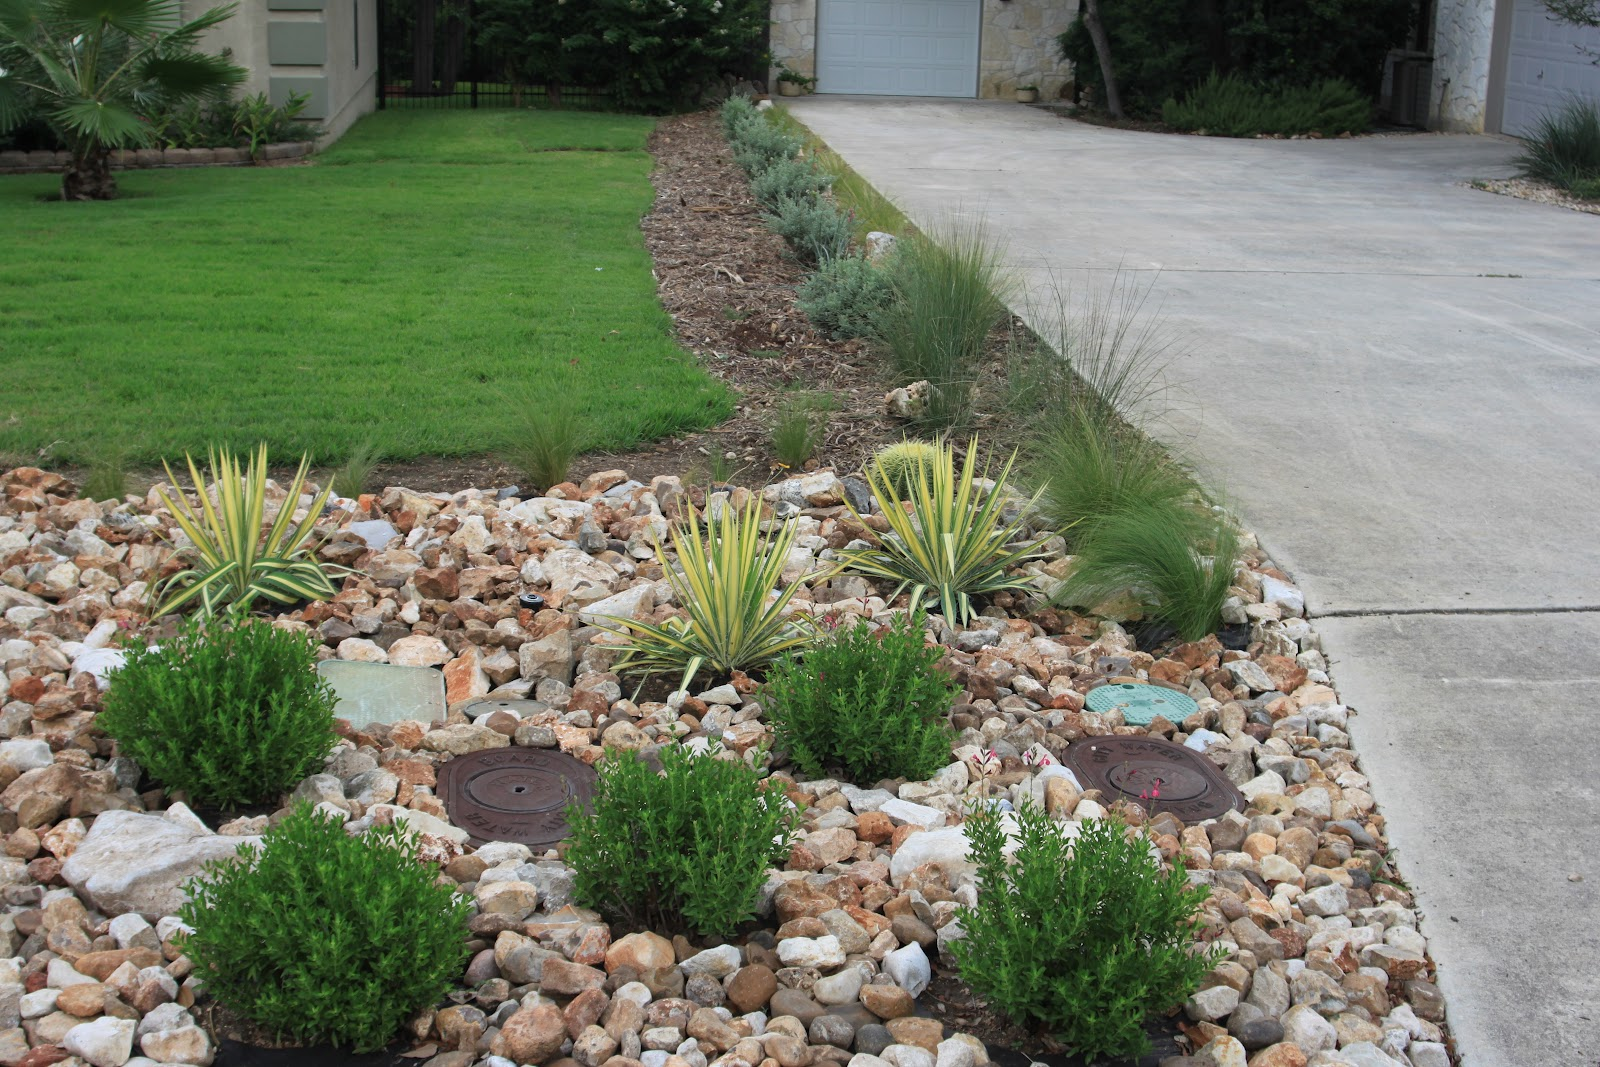 Willing landscape front lawn landscaping ideas using - Garden design using grasses ...